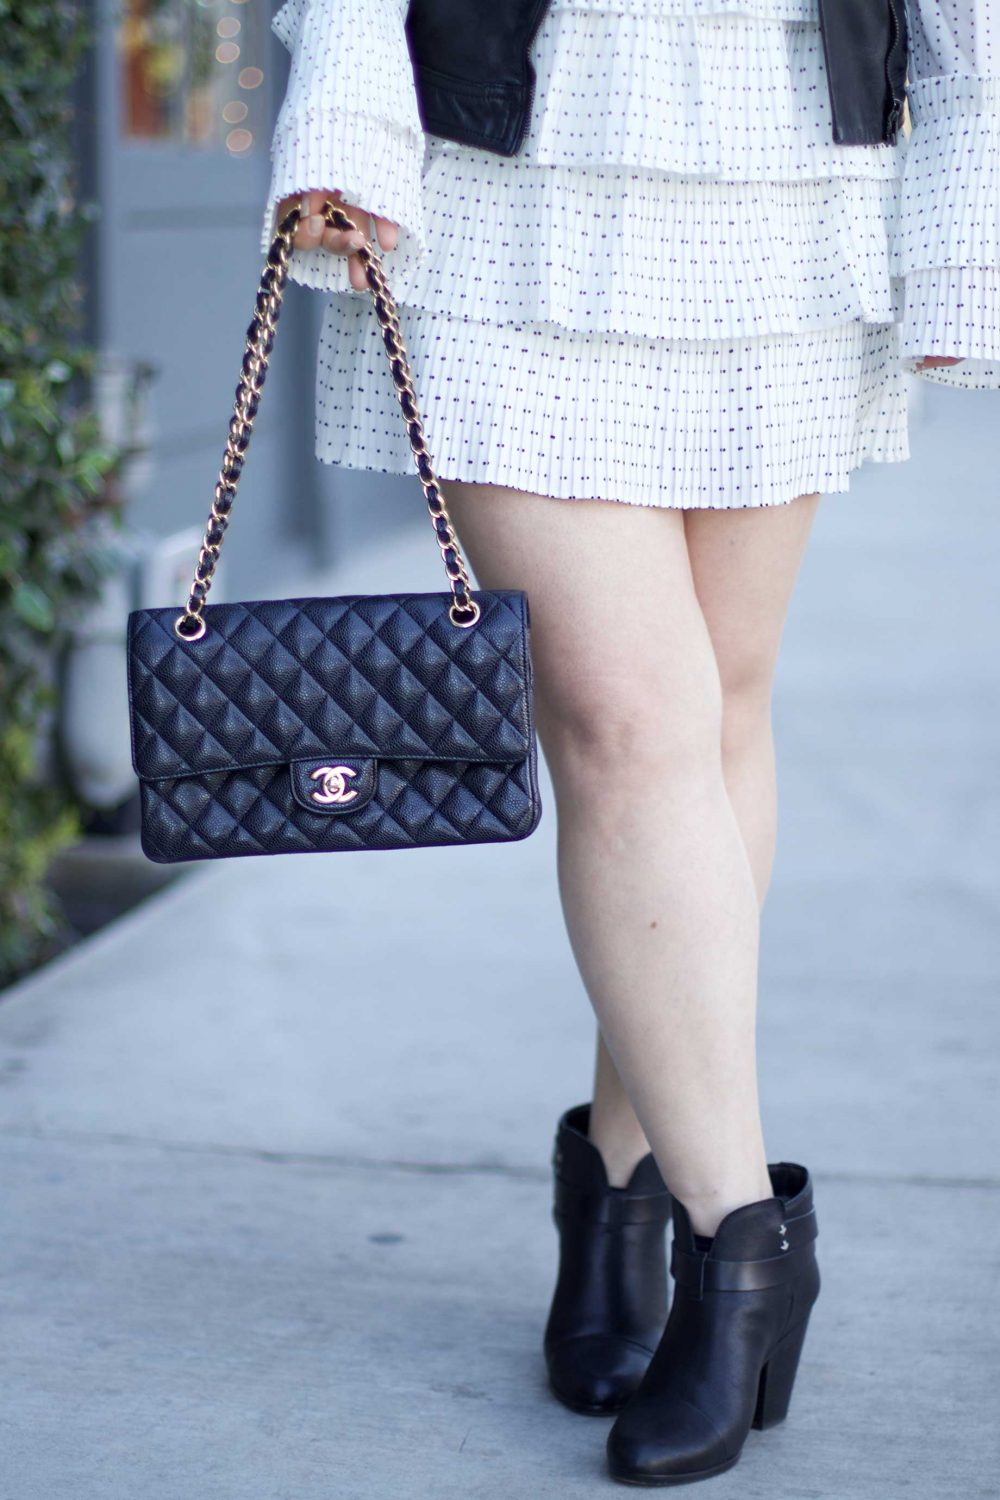 How to Choose A Chanel Handbag